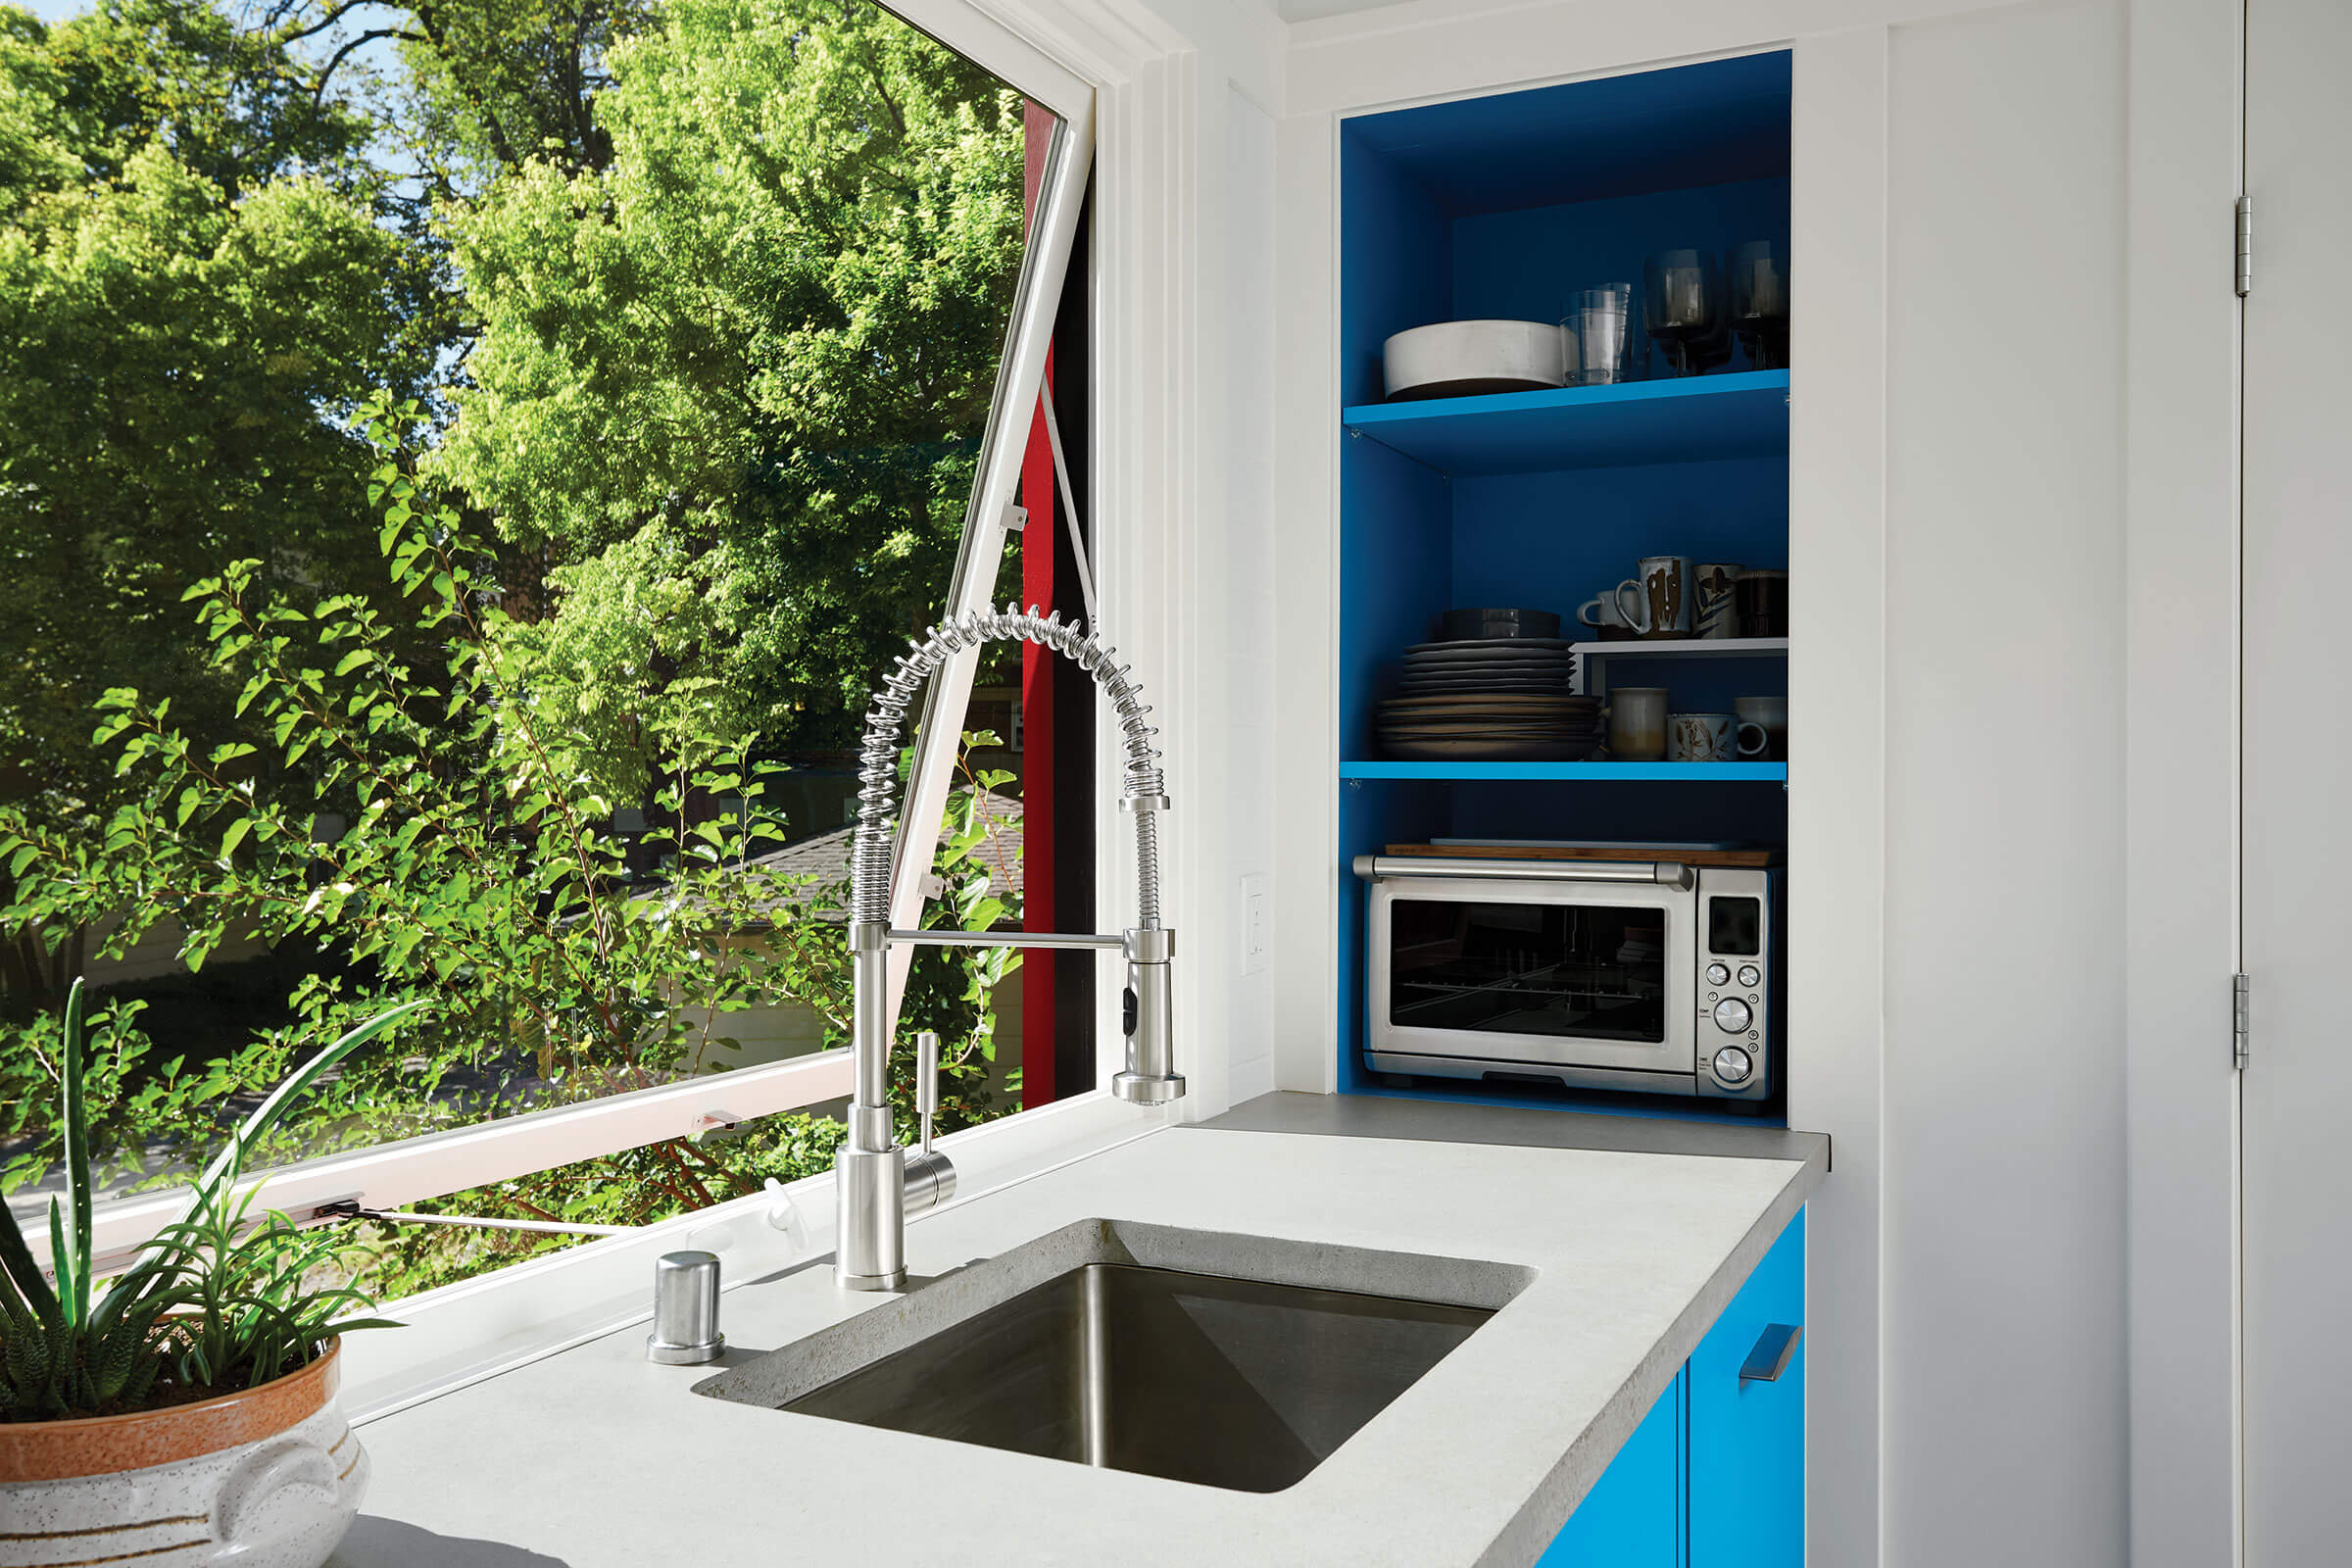 Kitchen With Large Signature Ultimate Awning Window Above Sink